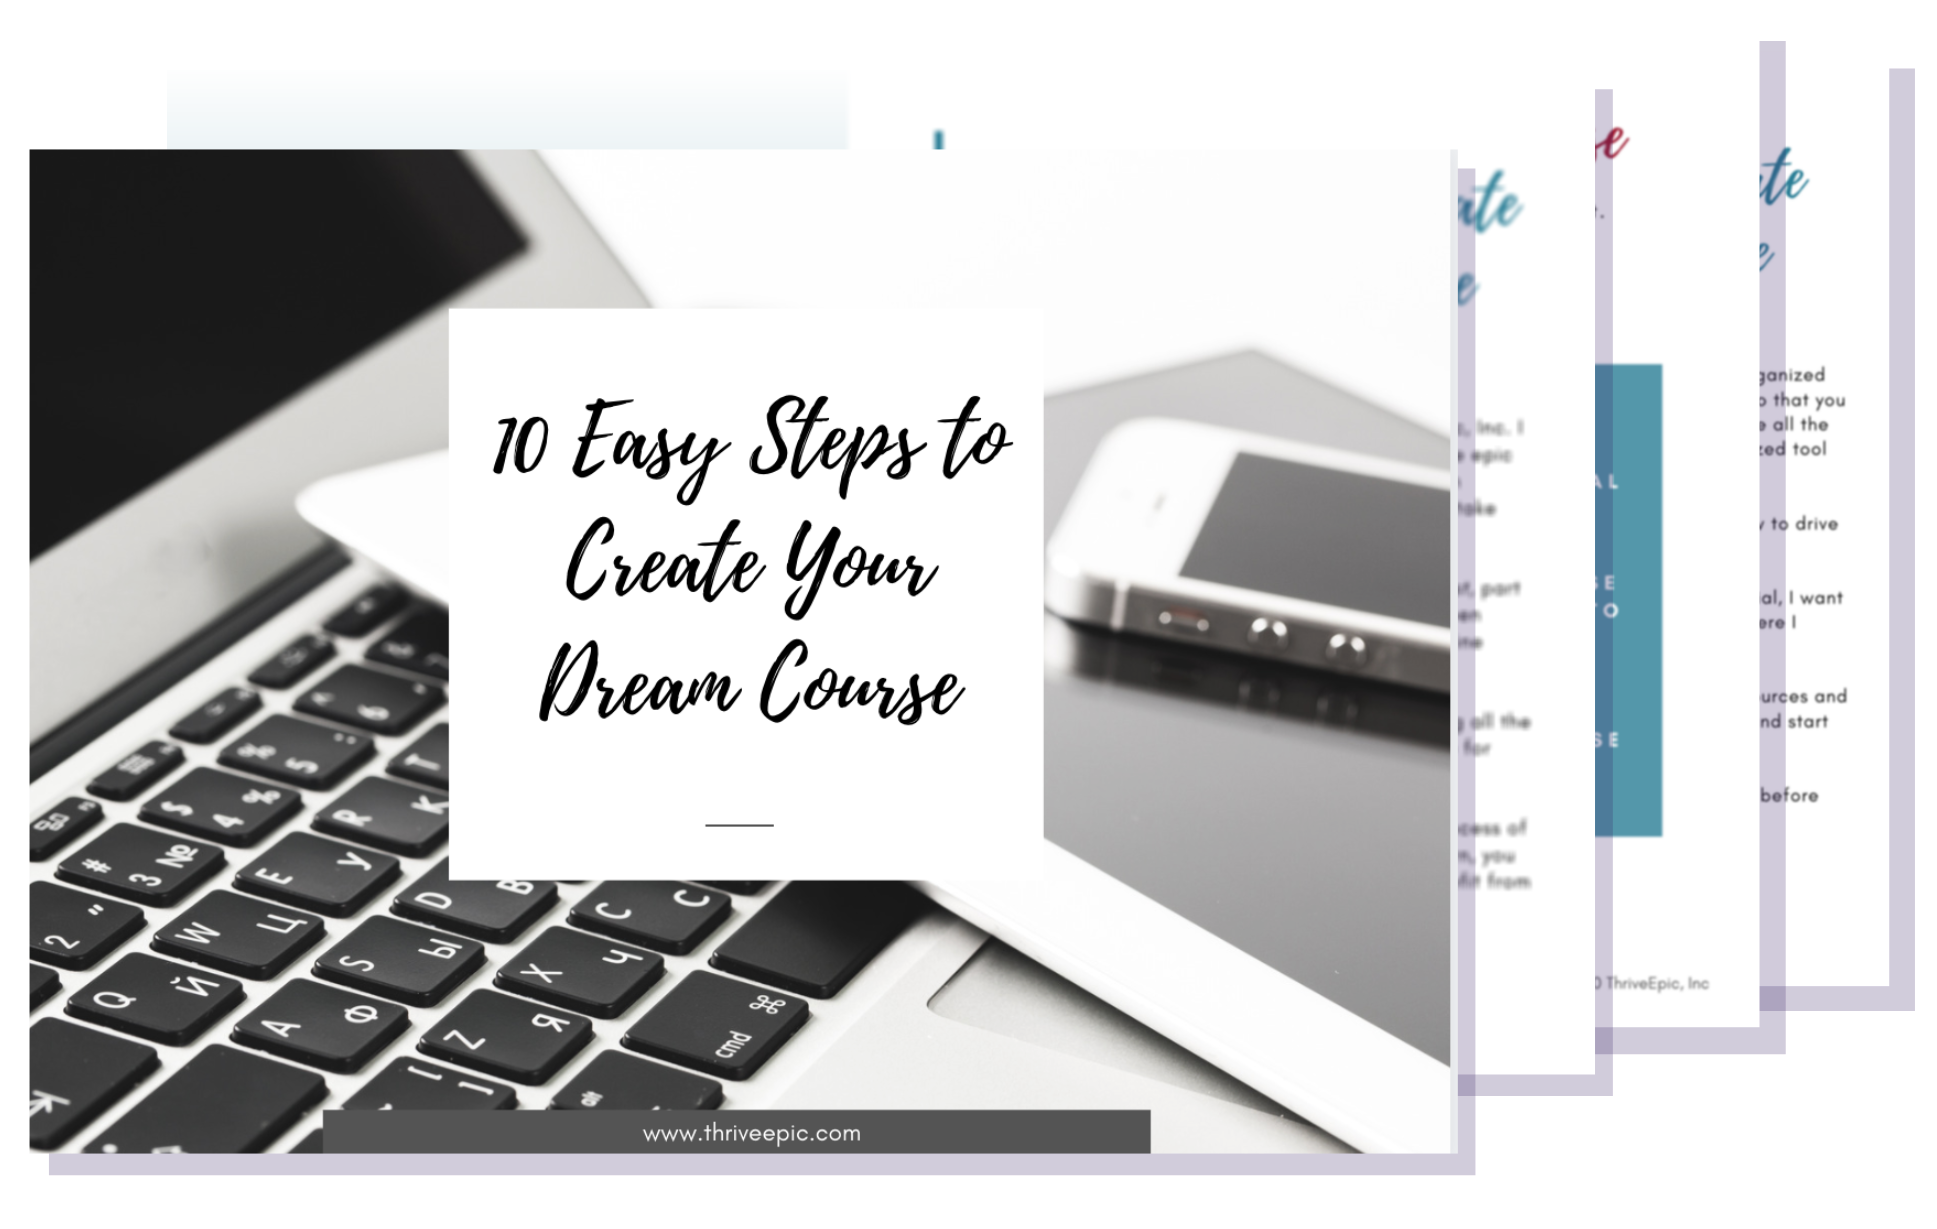 10 easy steps to create your dream online course